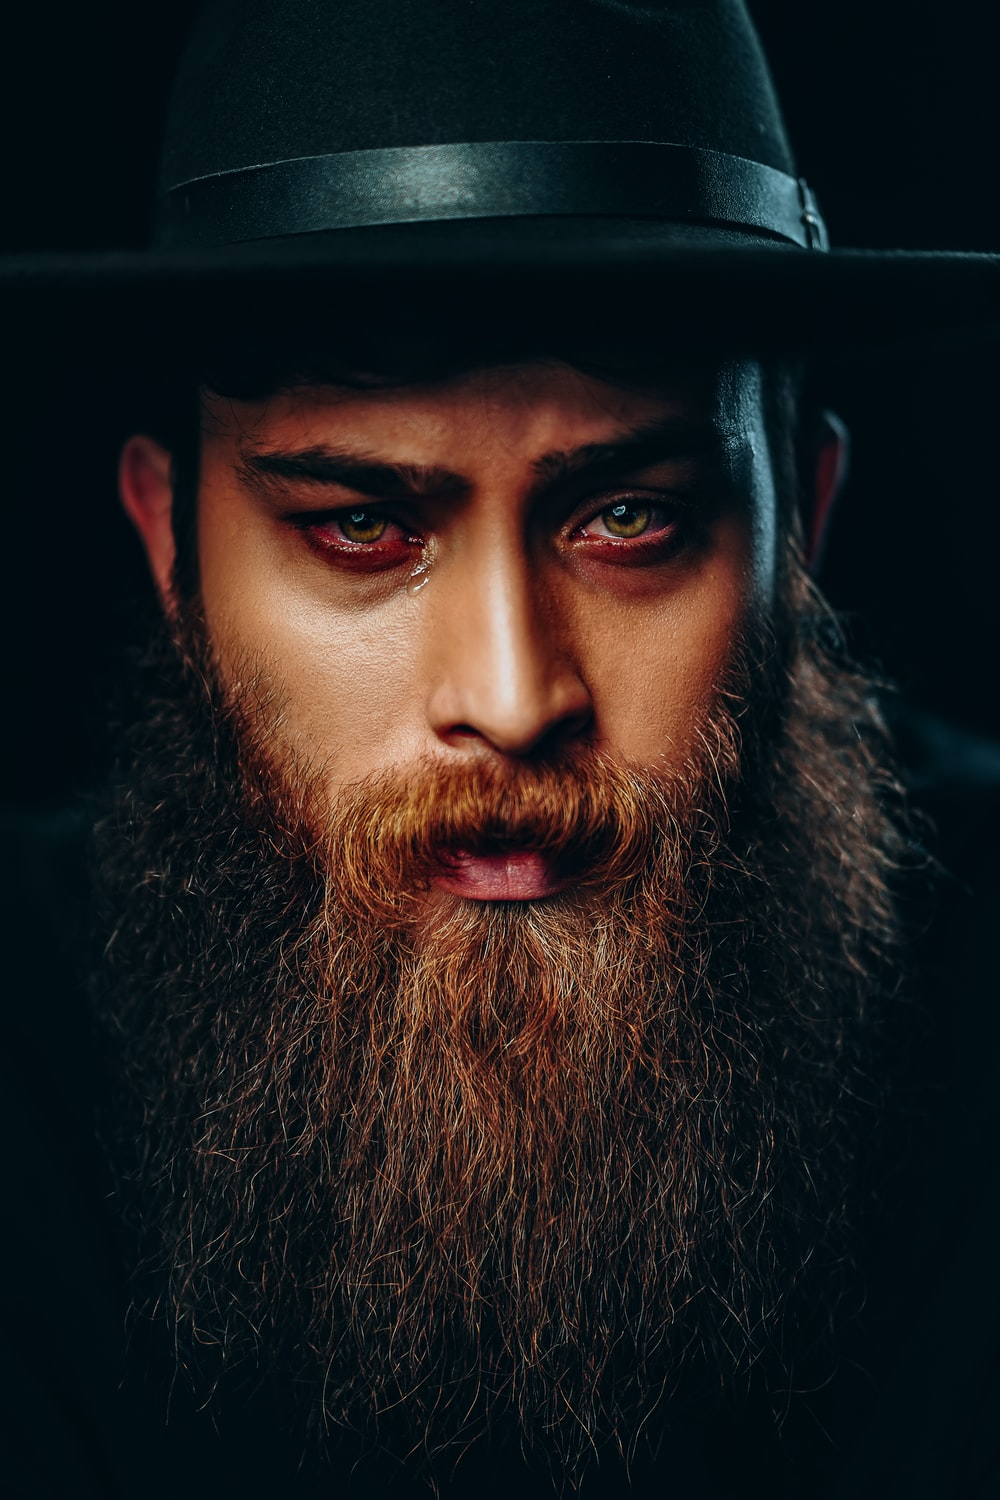 man with black beard wearing black hat